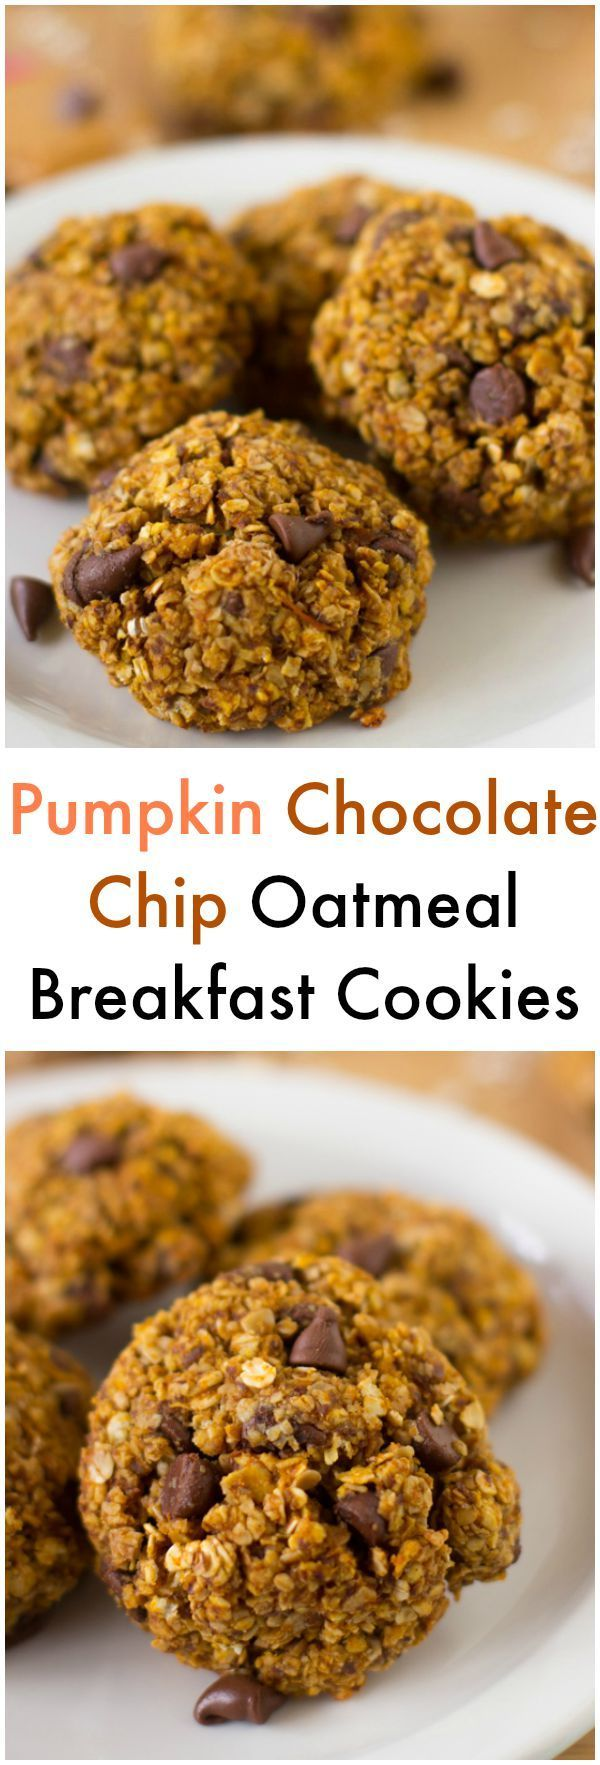 Oatmeal cookies on kefir: recipes, cooking features and recommendations 62